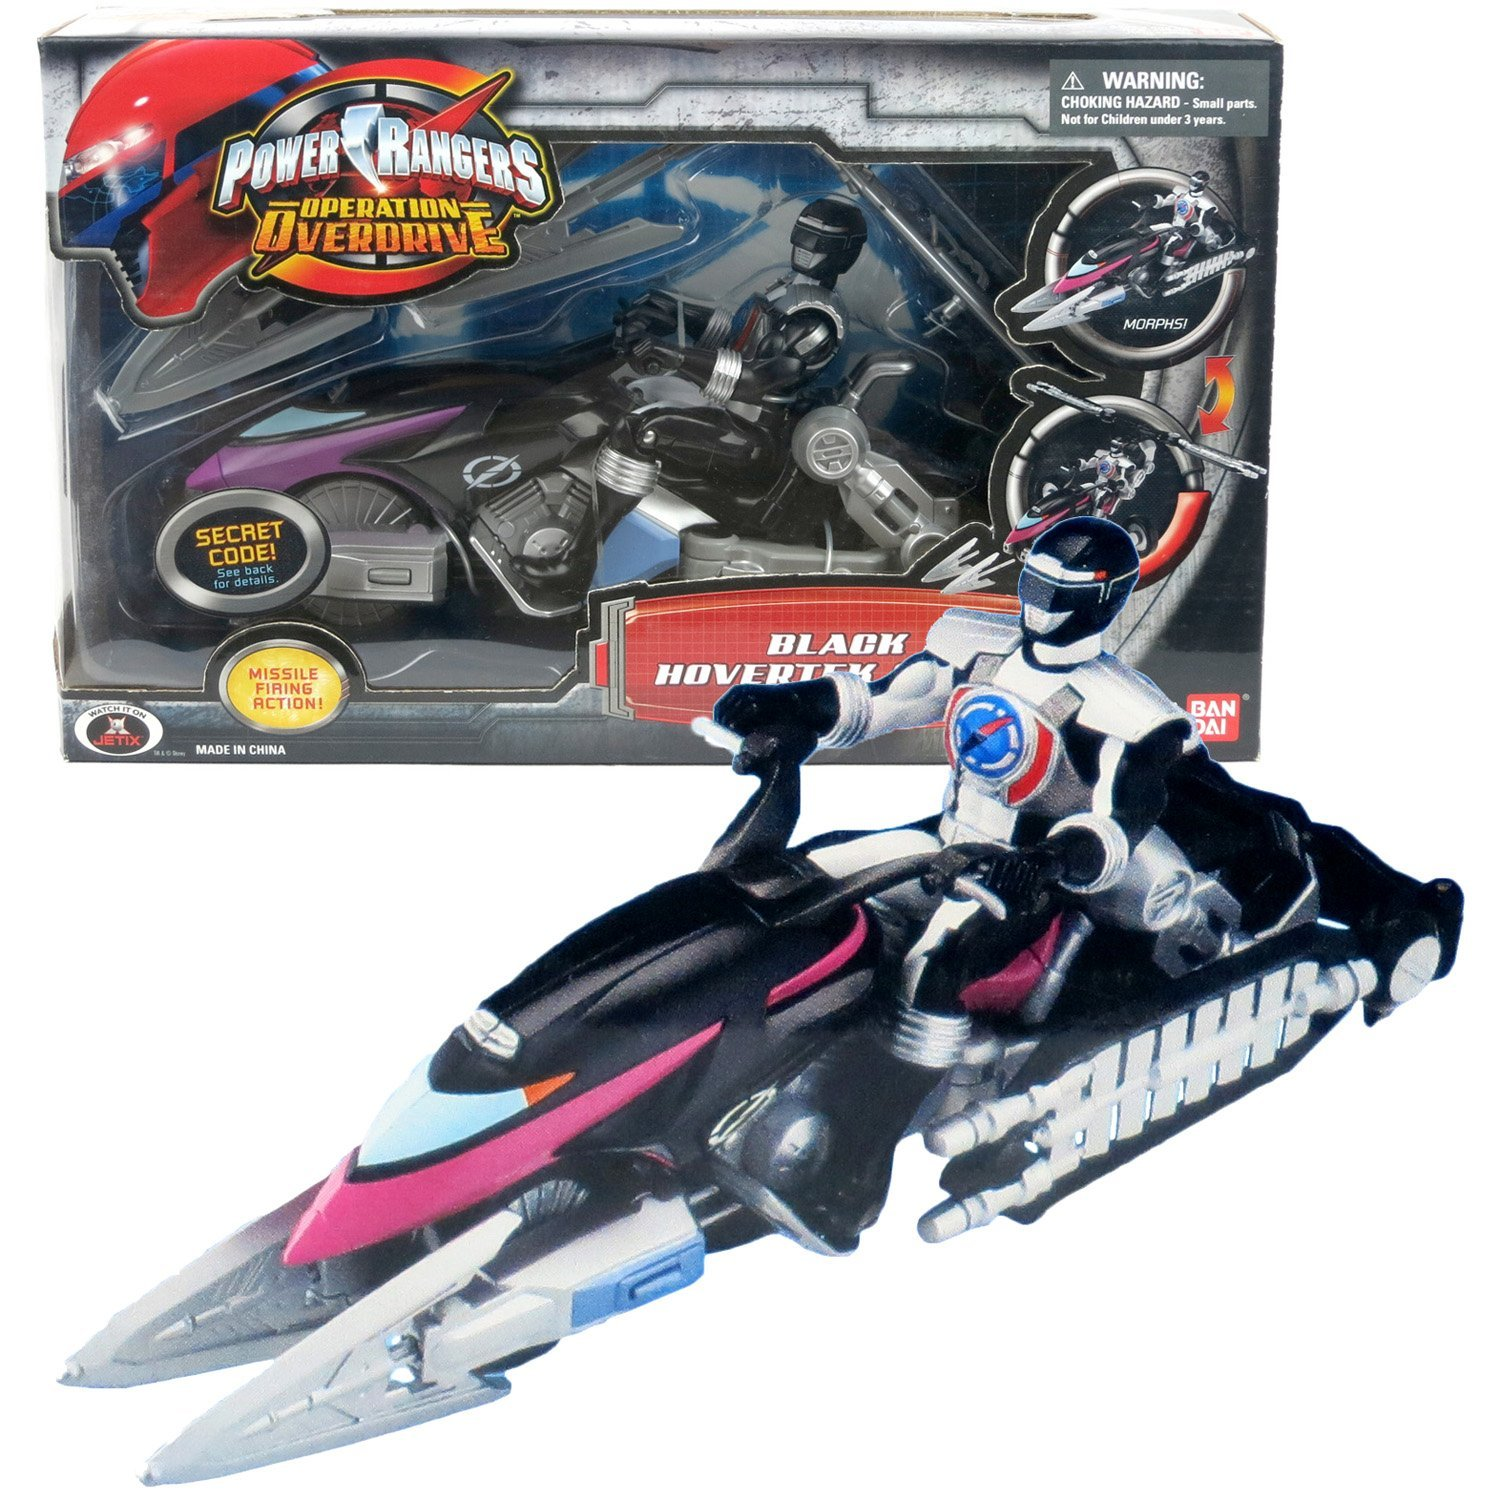 Bandai Year 2006 Power Rangers Operation Overdrive Series 8-1/2 Inch Long Action